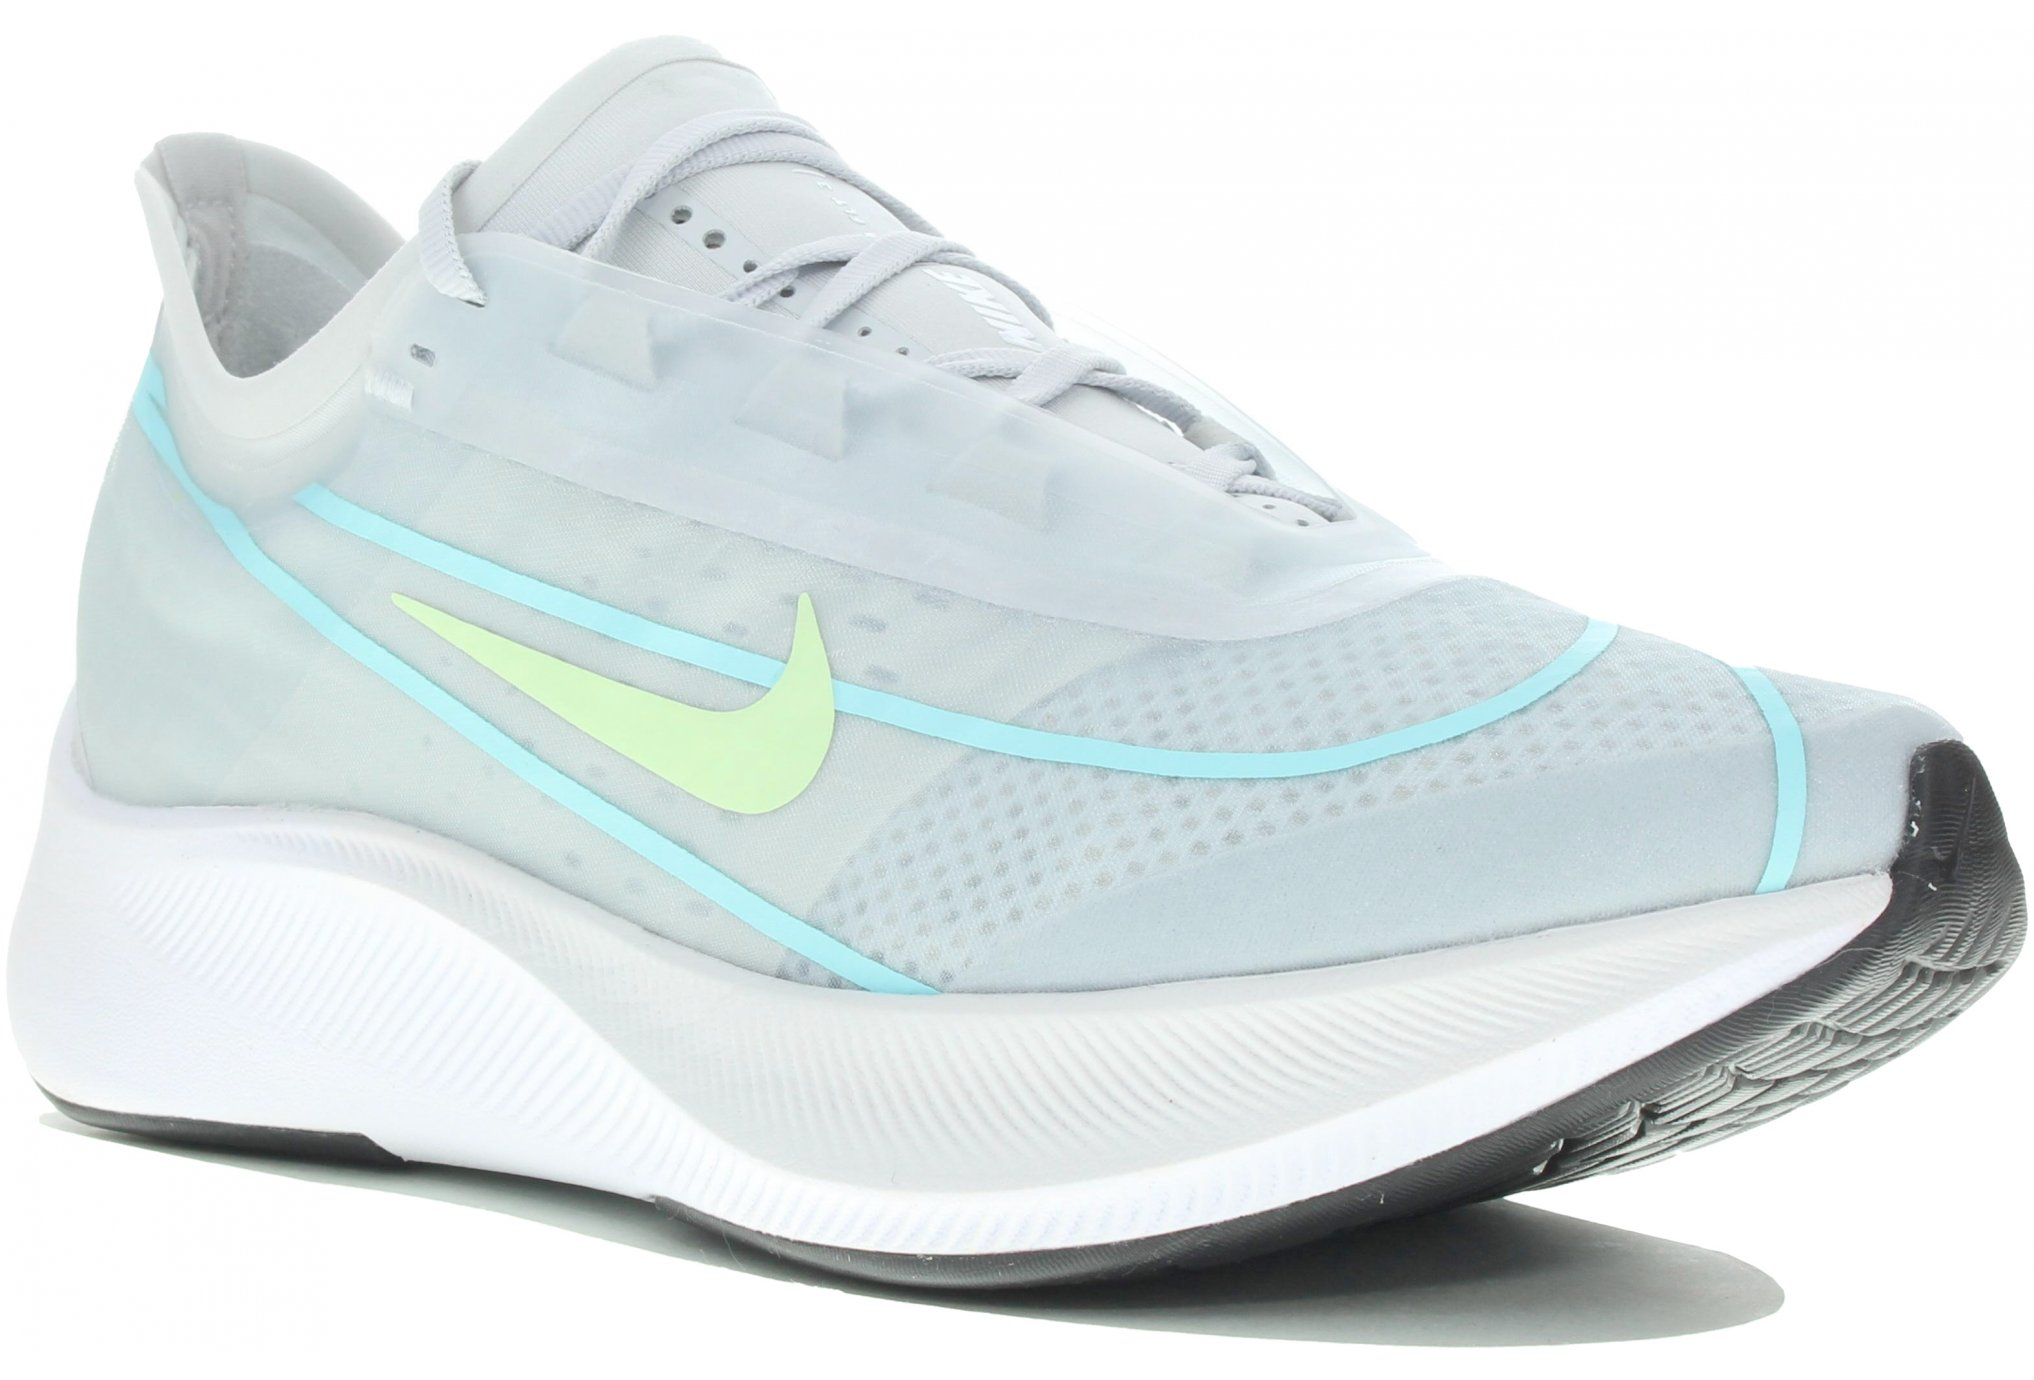 Nike Zoom Fly 3 Chaussures running femme